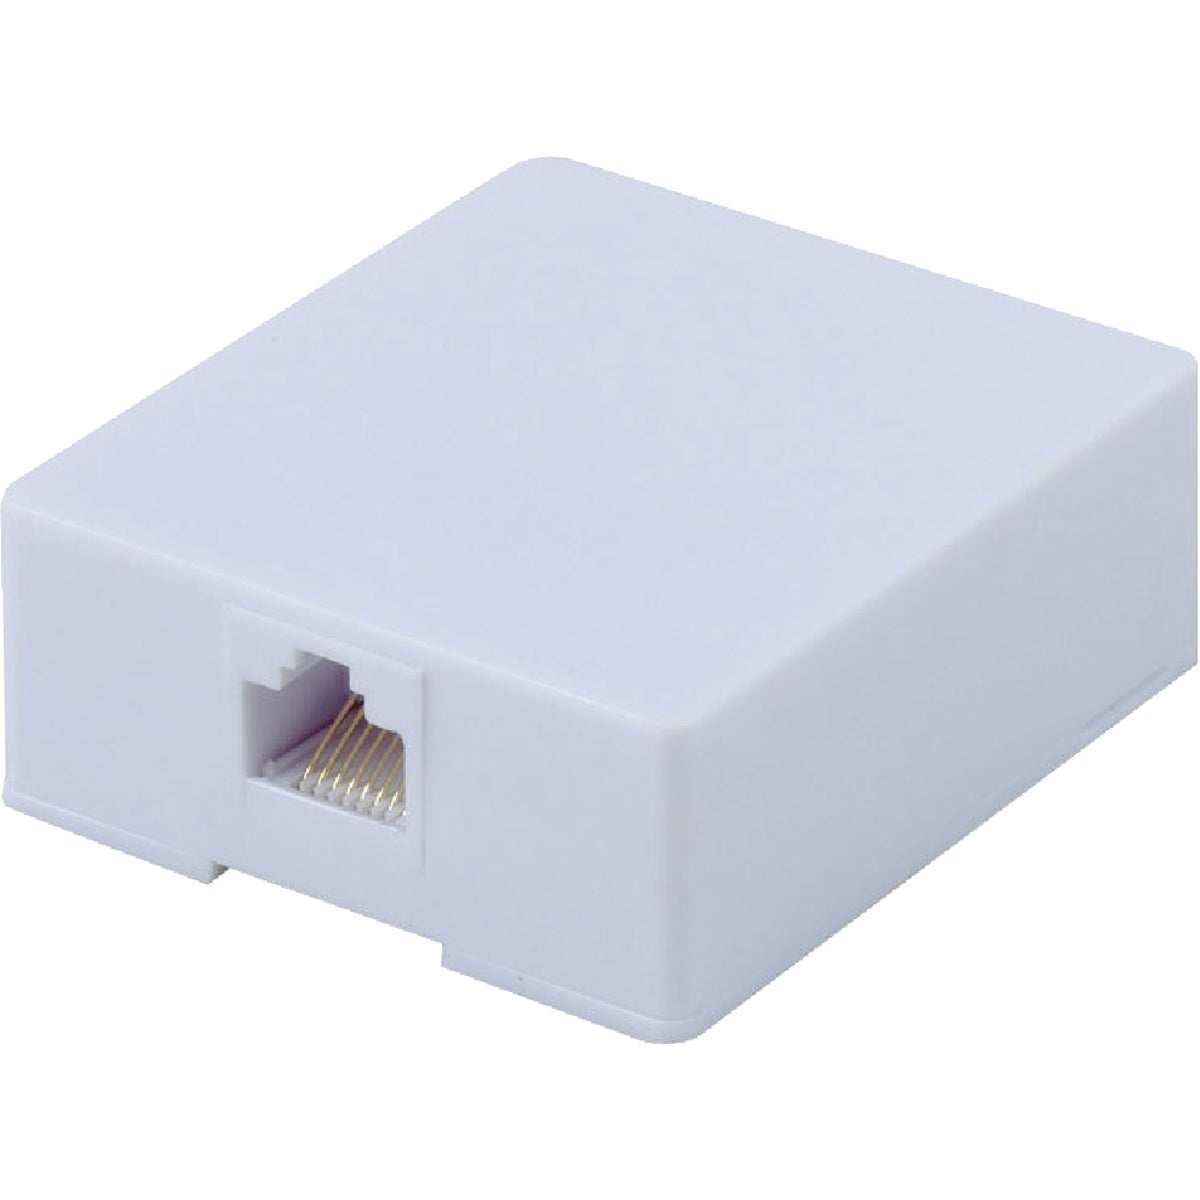 RJ45 WHITE SURFACE JACK - TP7410R by Audiovox Accessories